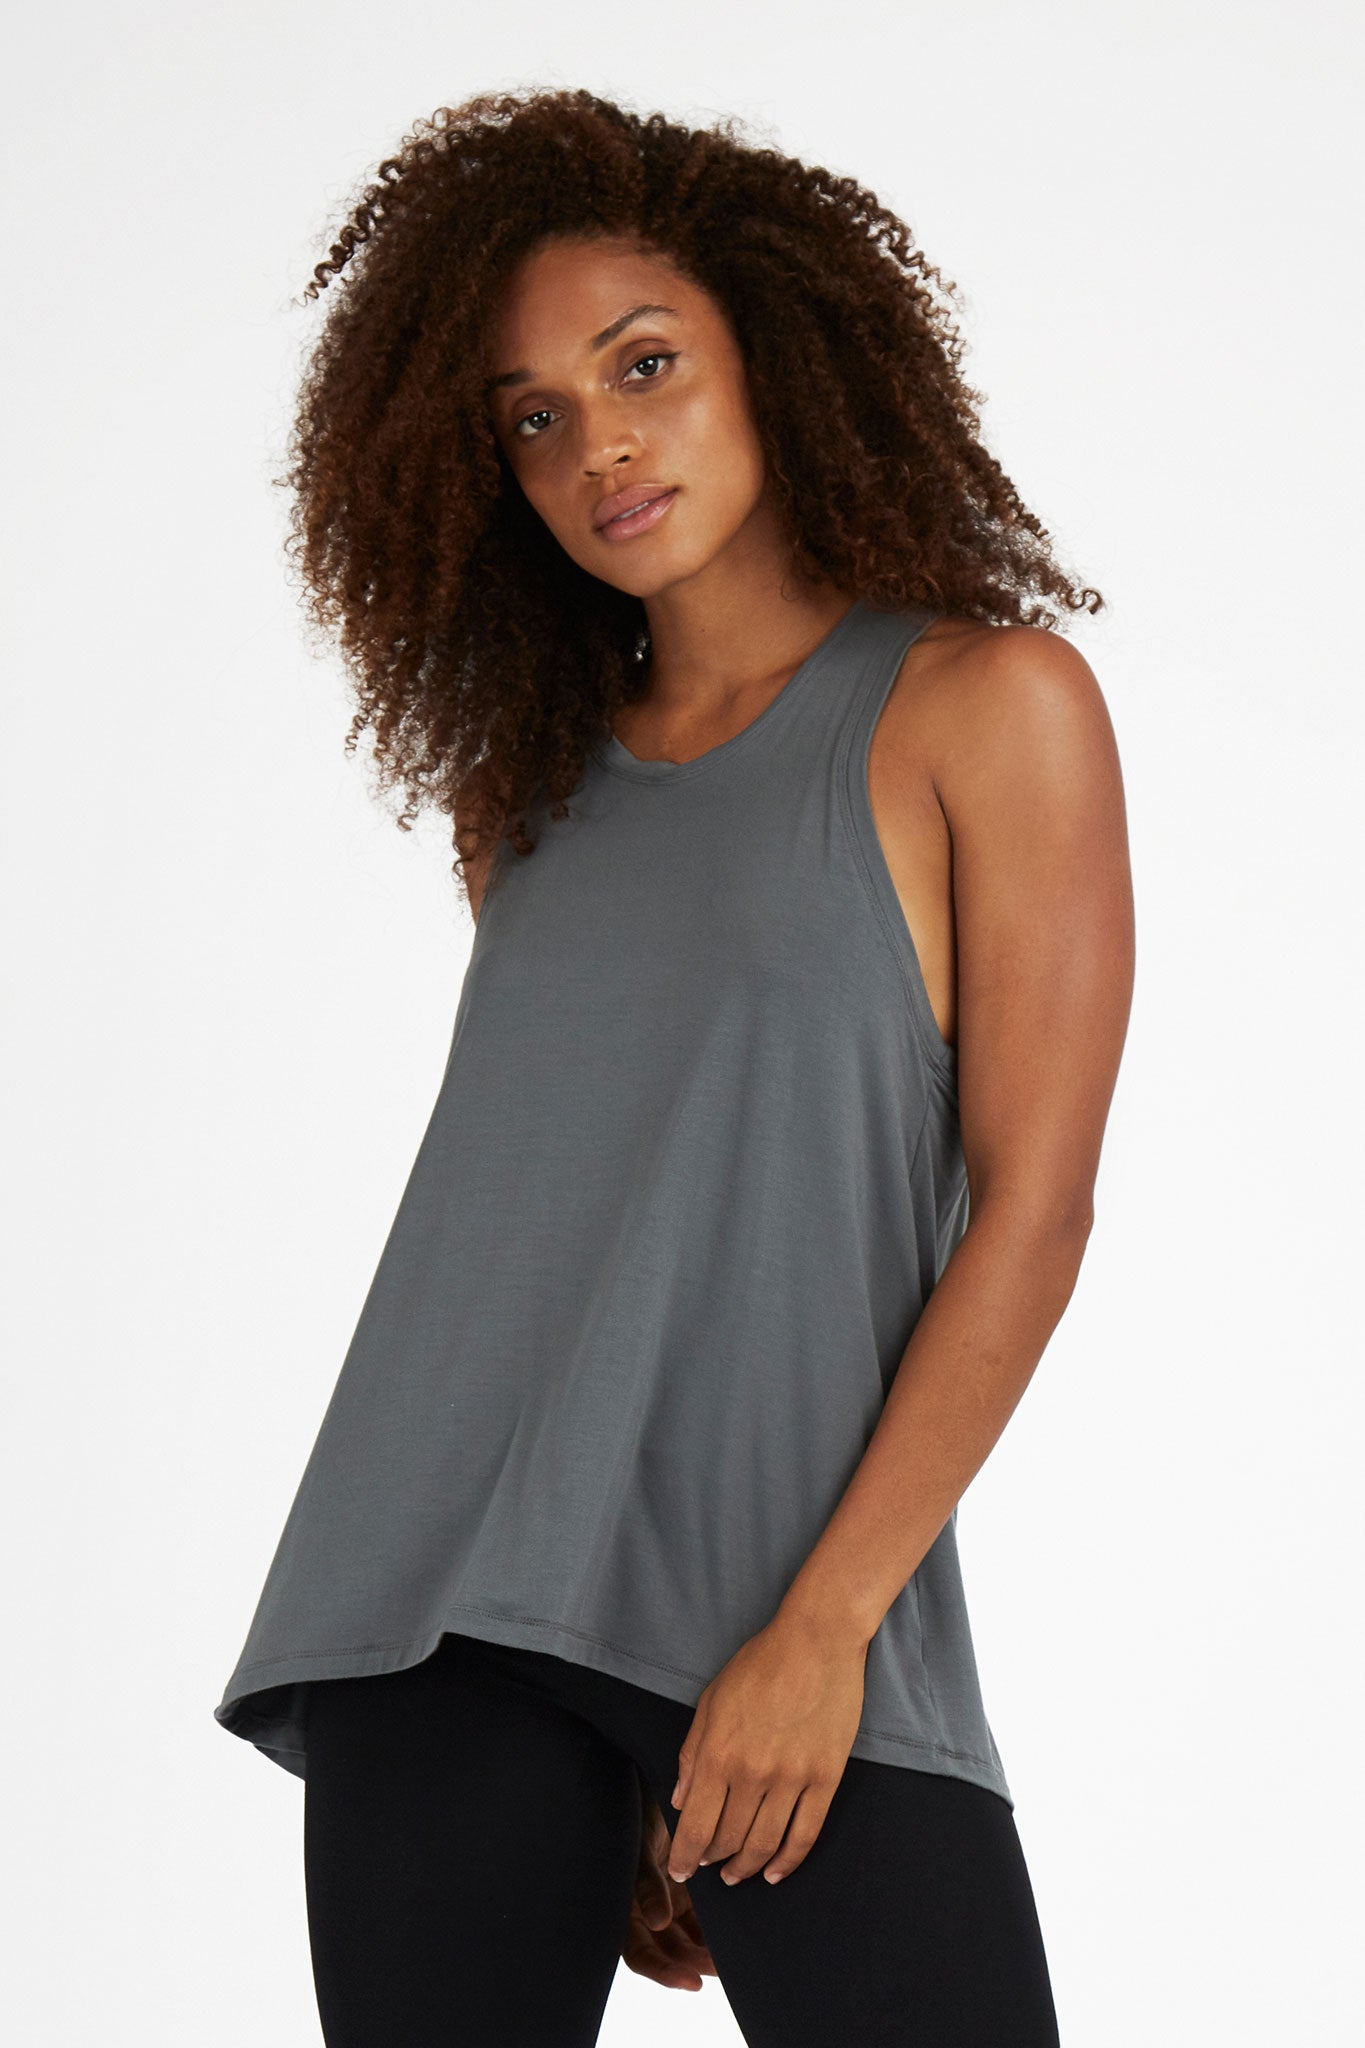 'Splice Tee' Top - Bamboo - Sage